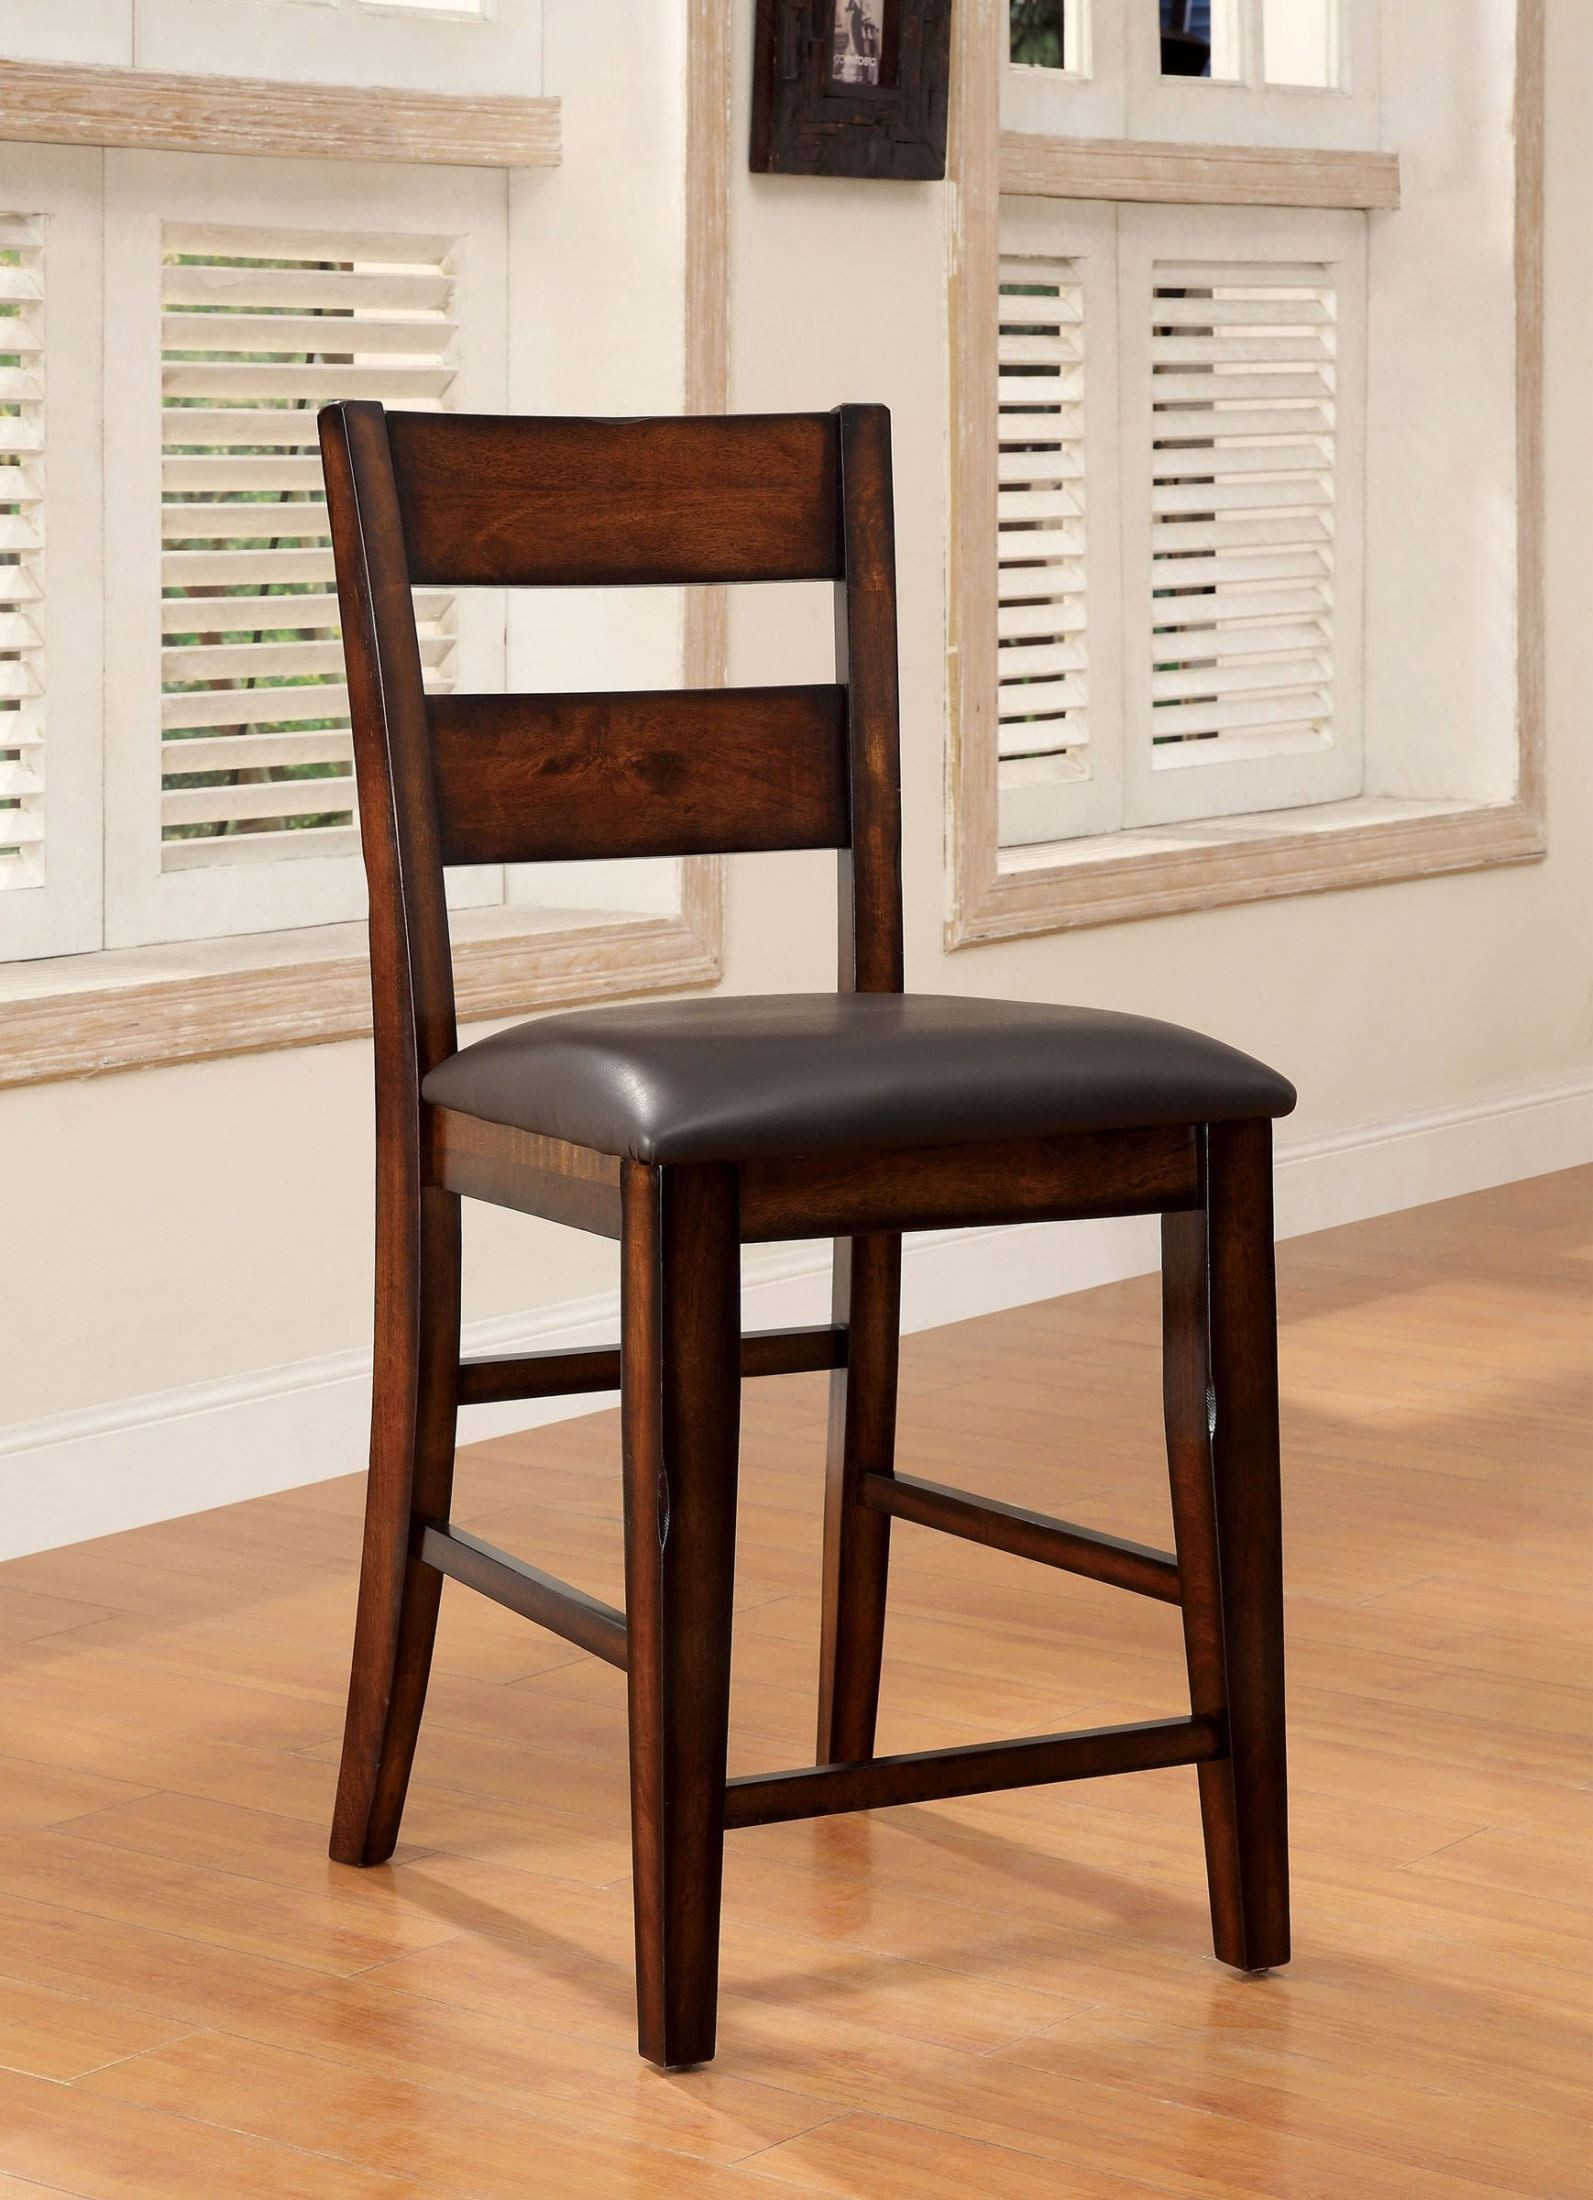 counter height chairs set of 2 extra wide lawn dickinson ii dark cherry chair